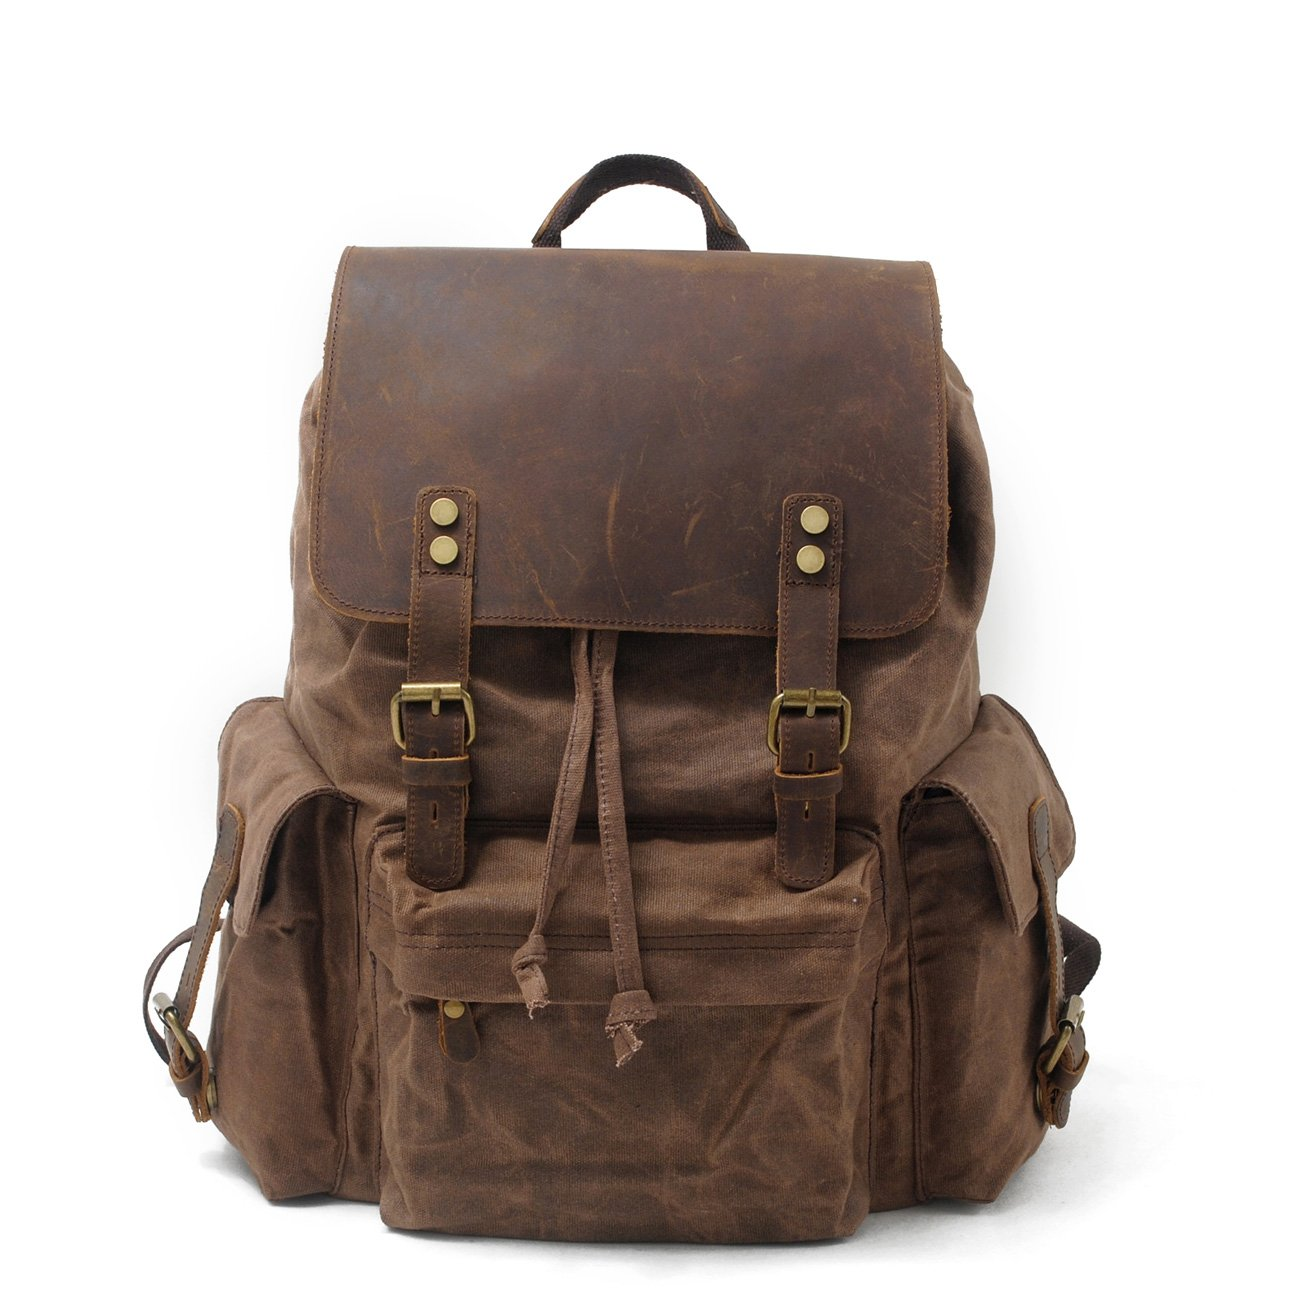 H-ANDYBAG Waxed Canvas Bag Rucksack Backpack Men & Women Coffee15.6 Inch Laptop